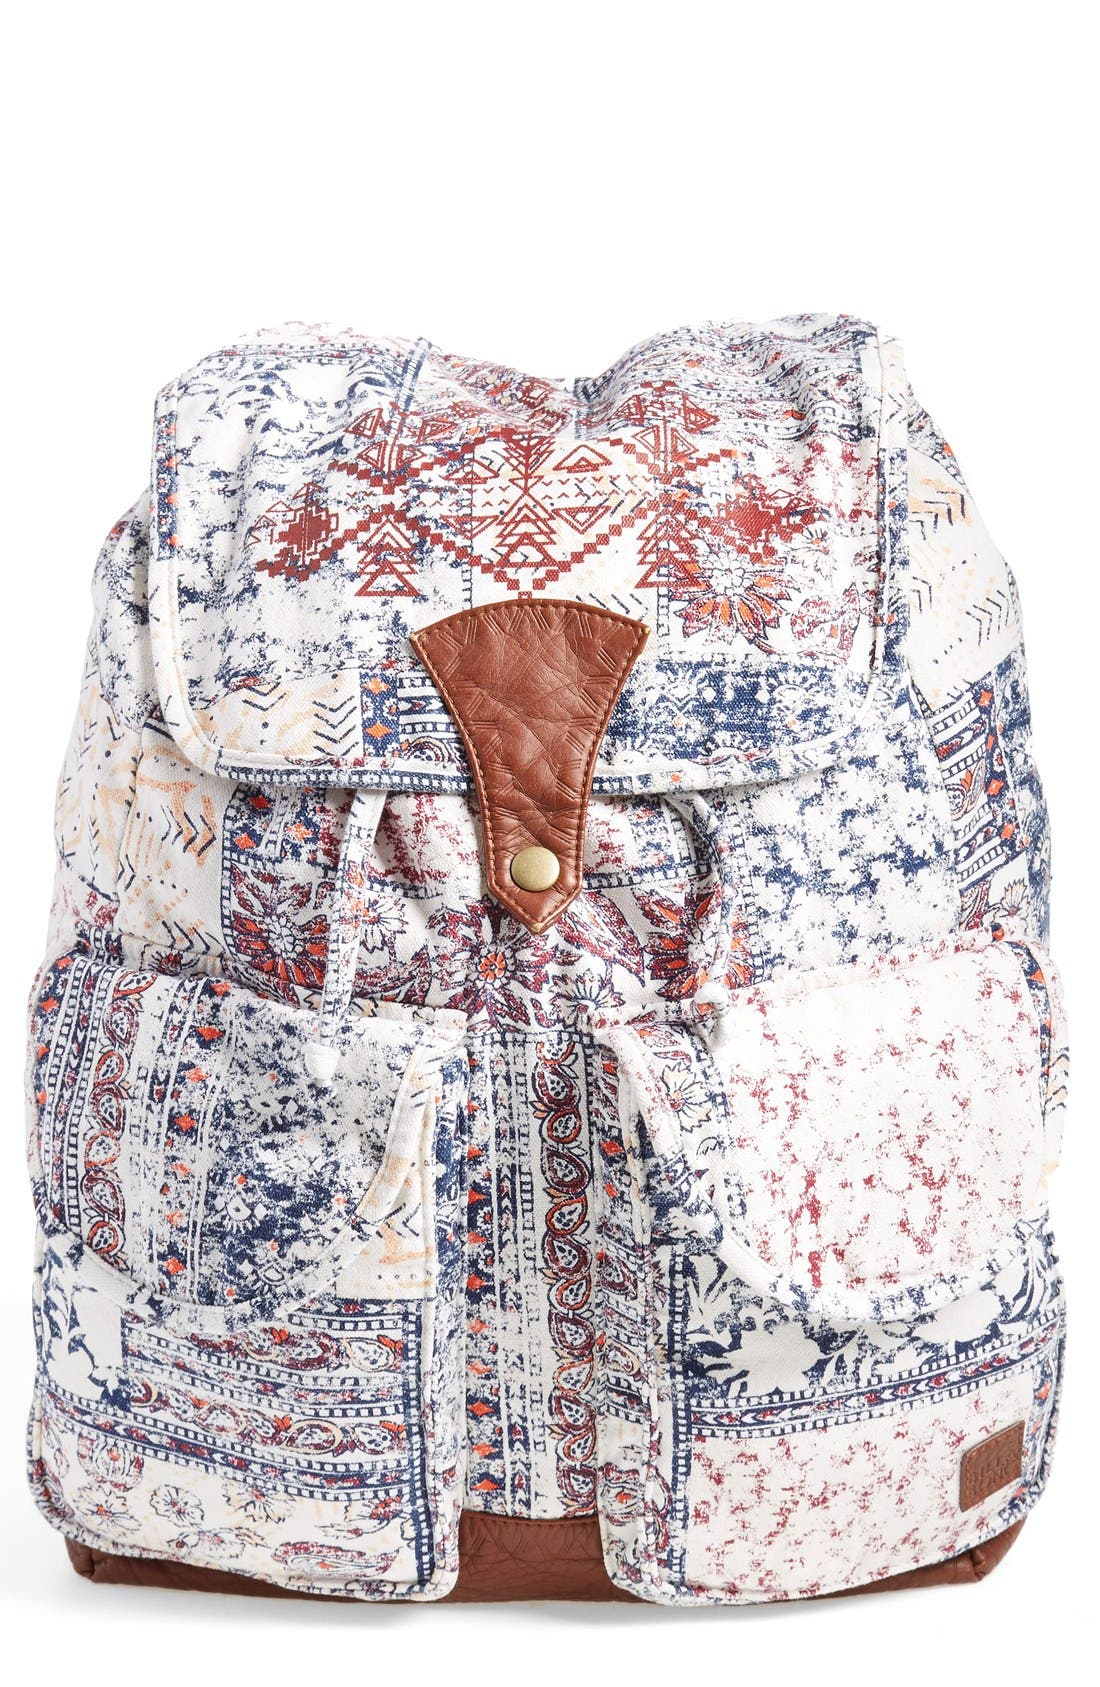 Alternate Image 1 Selected - Billabong 'Midnight Moonz' Slouchy Canvas Backpack